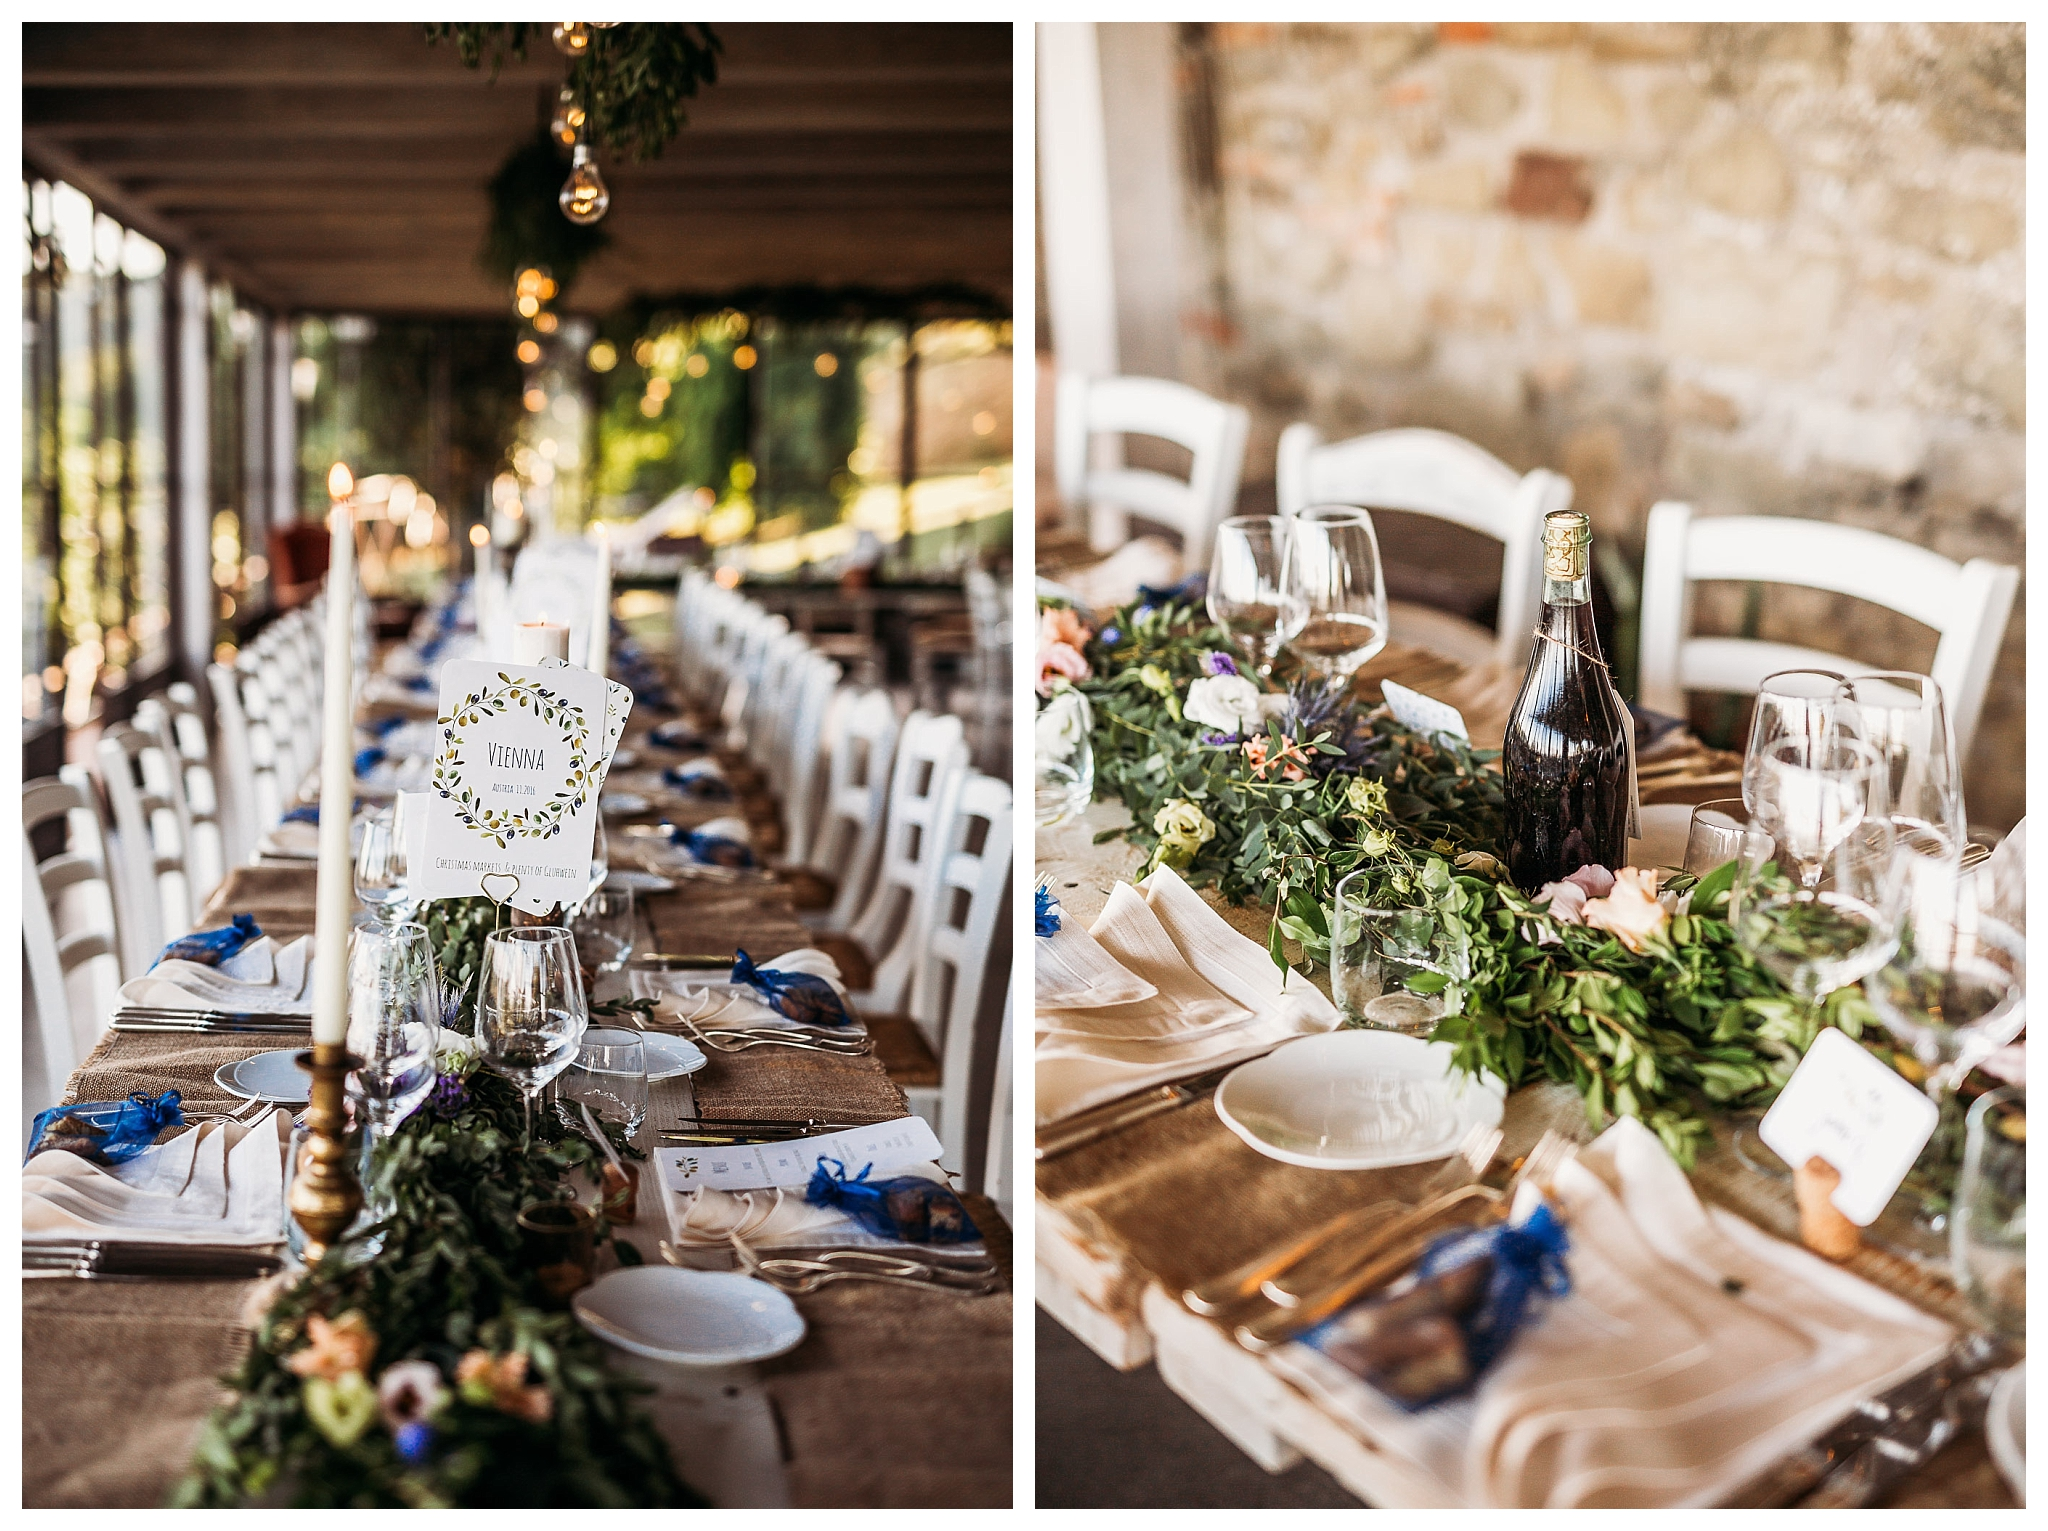 Wedding table decor with lights, candles and flowers